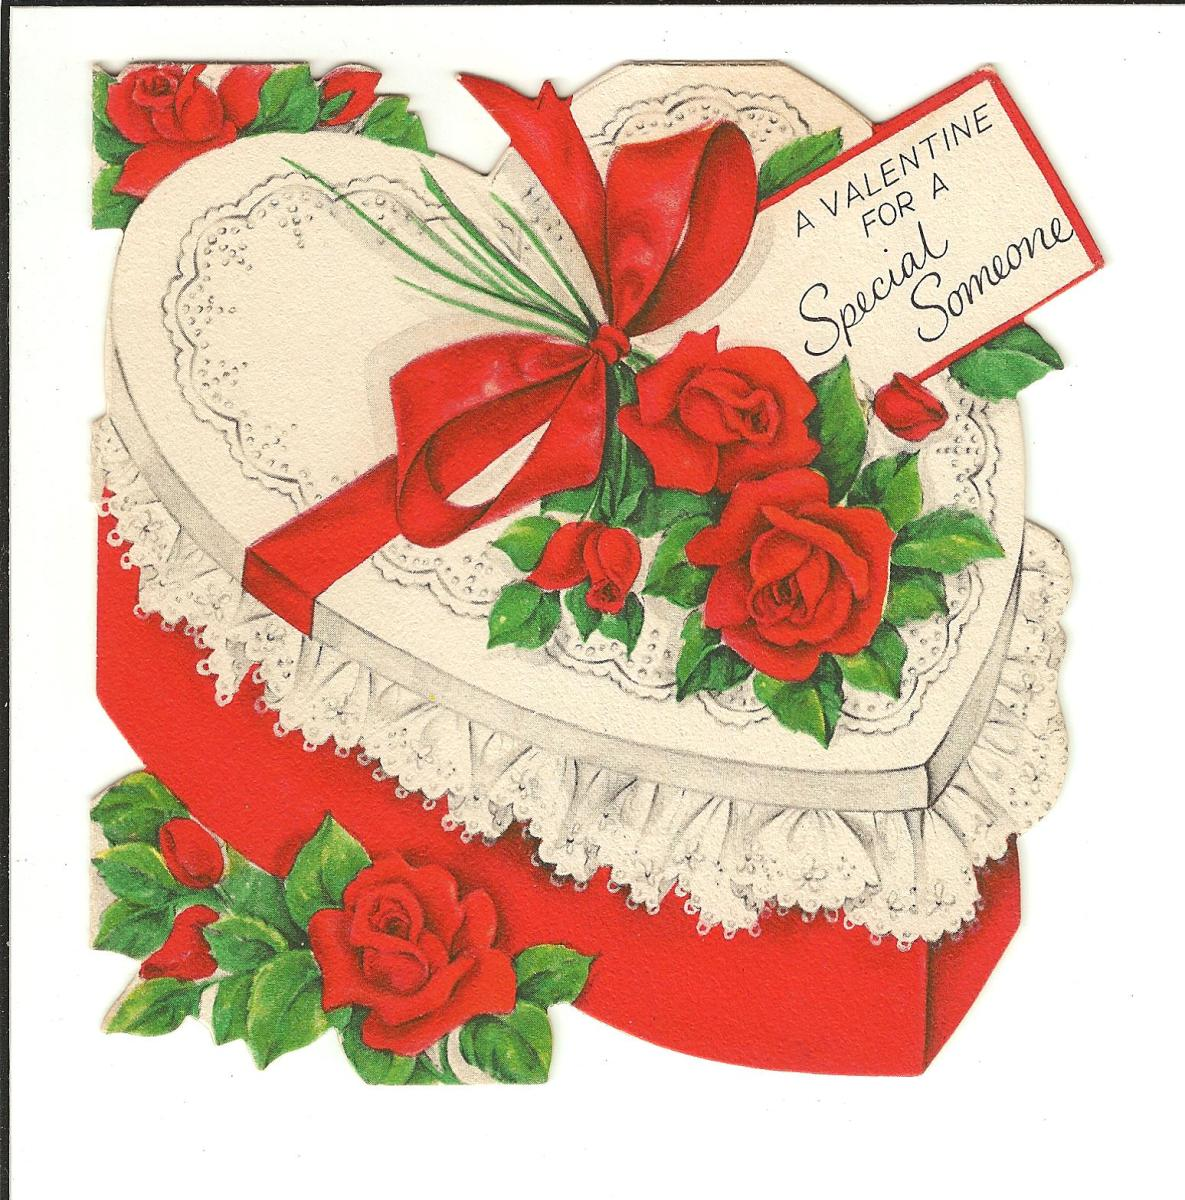 This vintage Valentine from my collection could be enlarged and words added next to it for your February display of books for Valentine's Day.